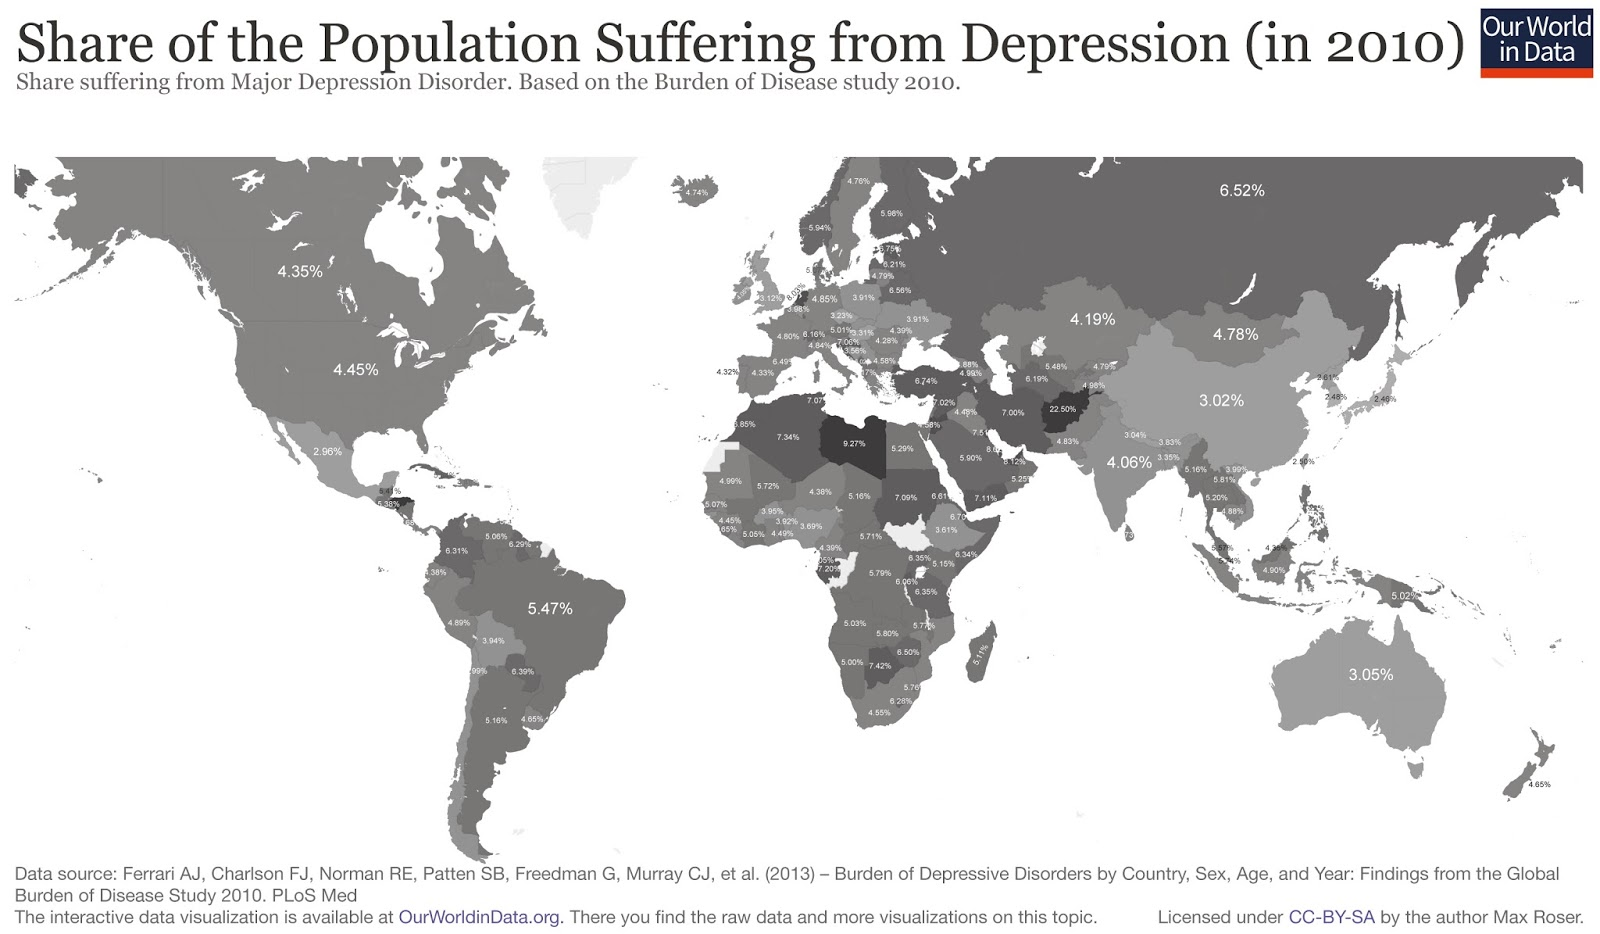 Share of the population suffering from depression